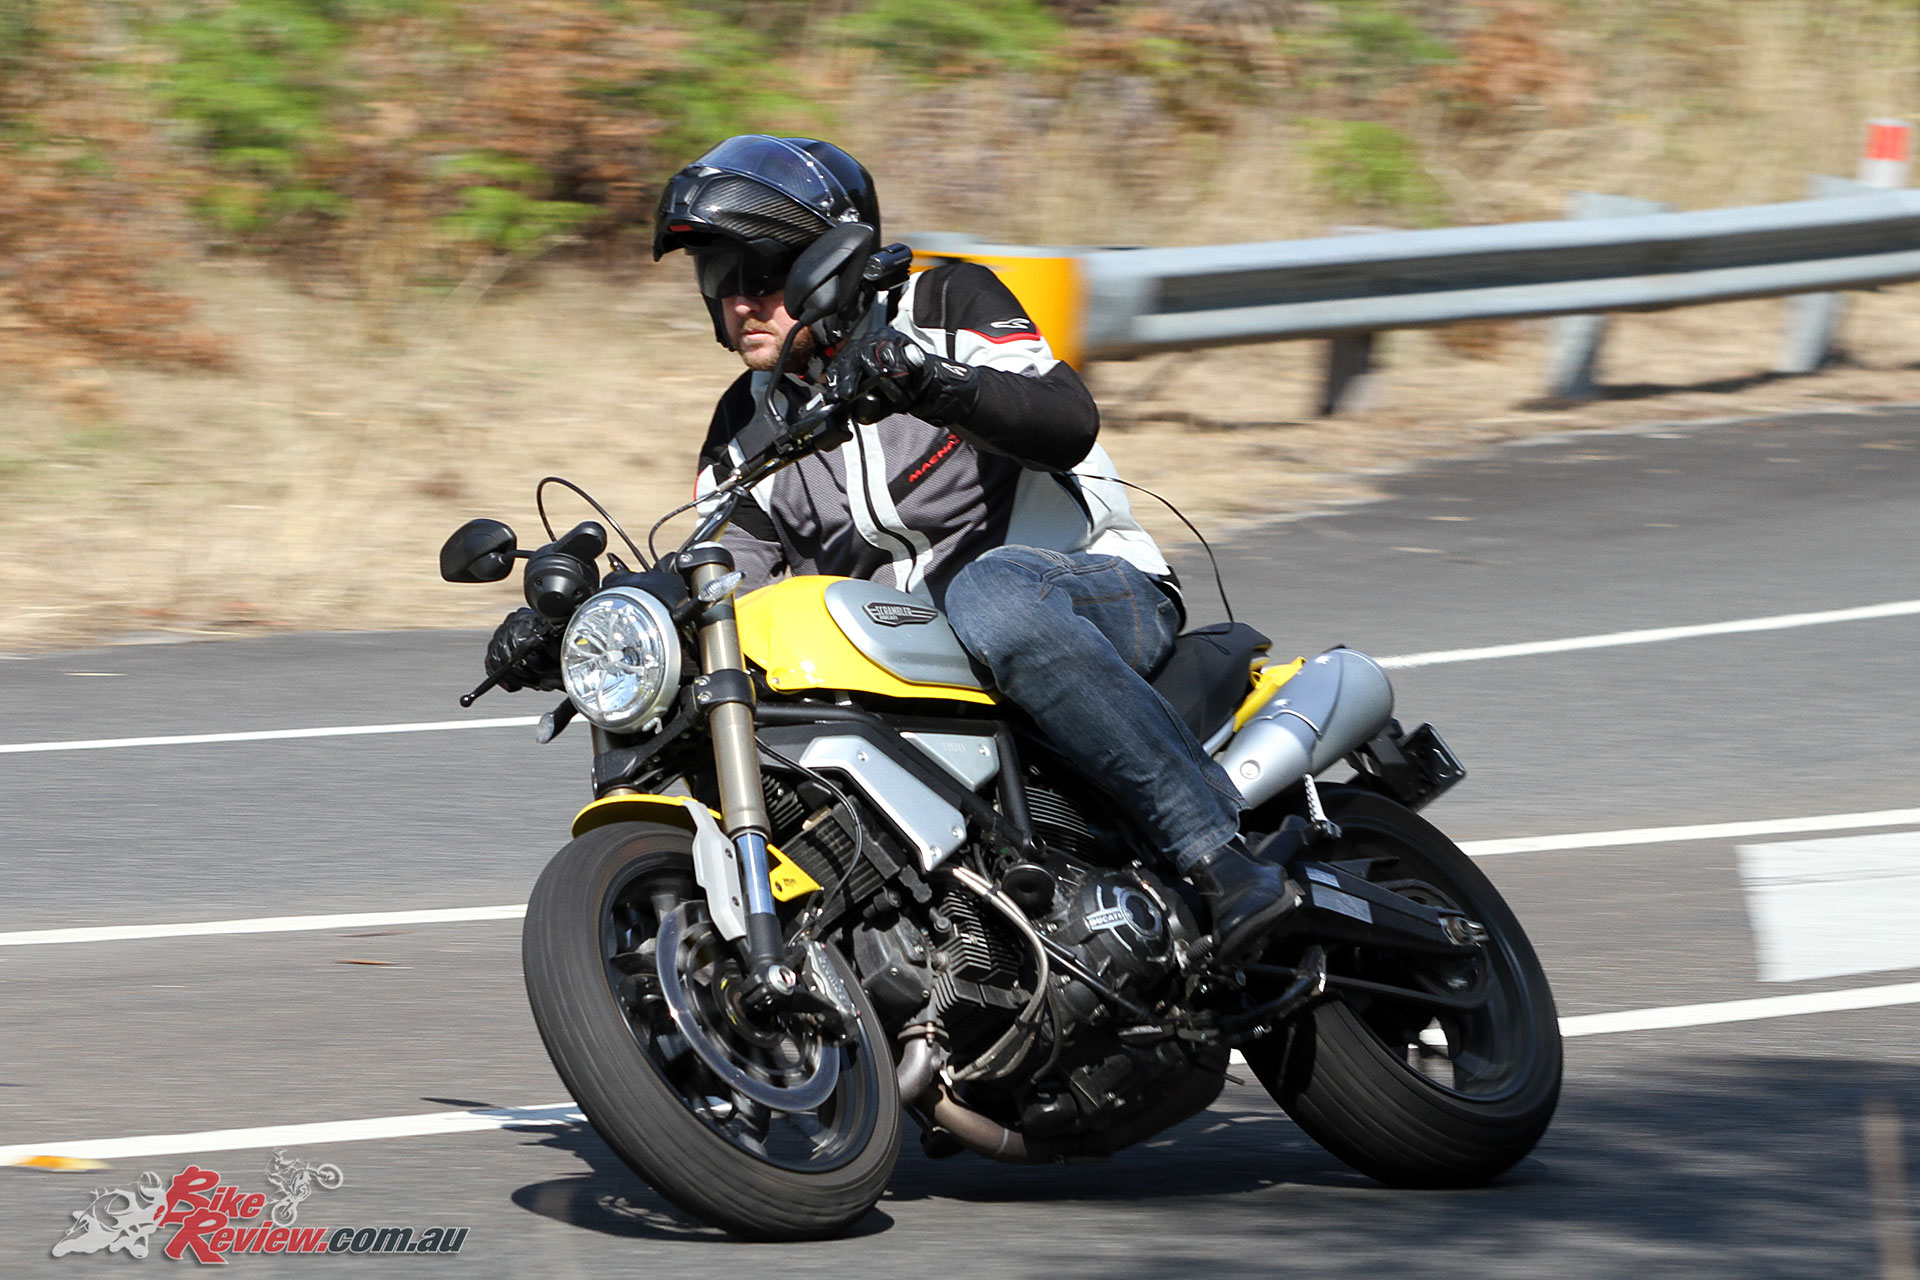 2018-Ducati-Scrambler-1100-Bike-Review-9325